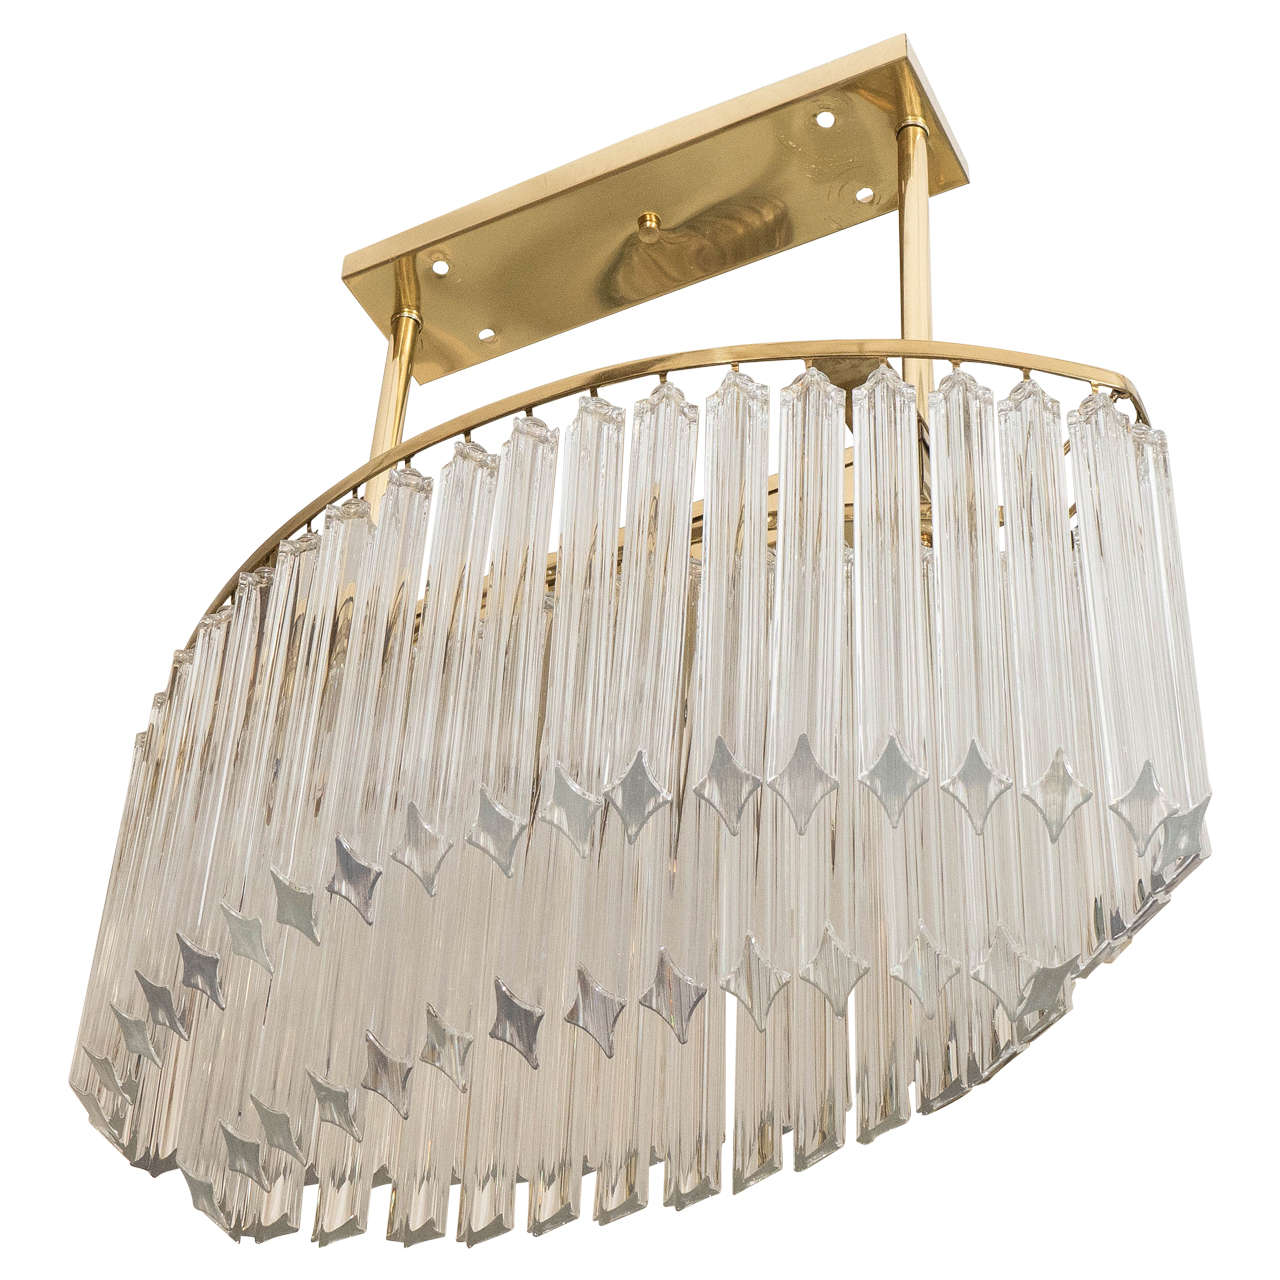 An Oval Chandelier in Brass and Glass Prisms by Venini For Sale at – Glass Prisms for Chandeliers